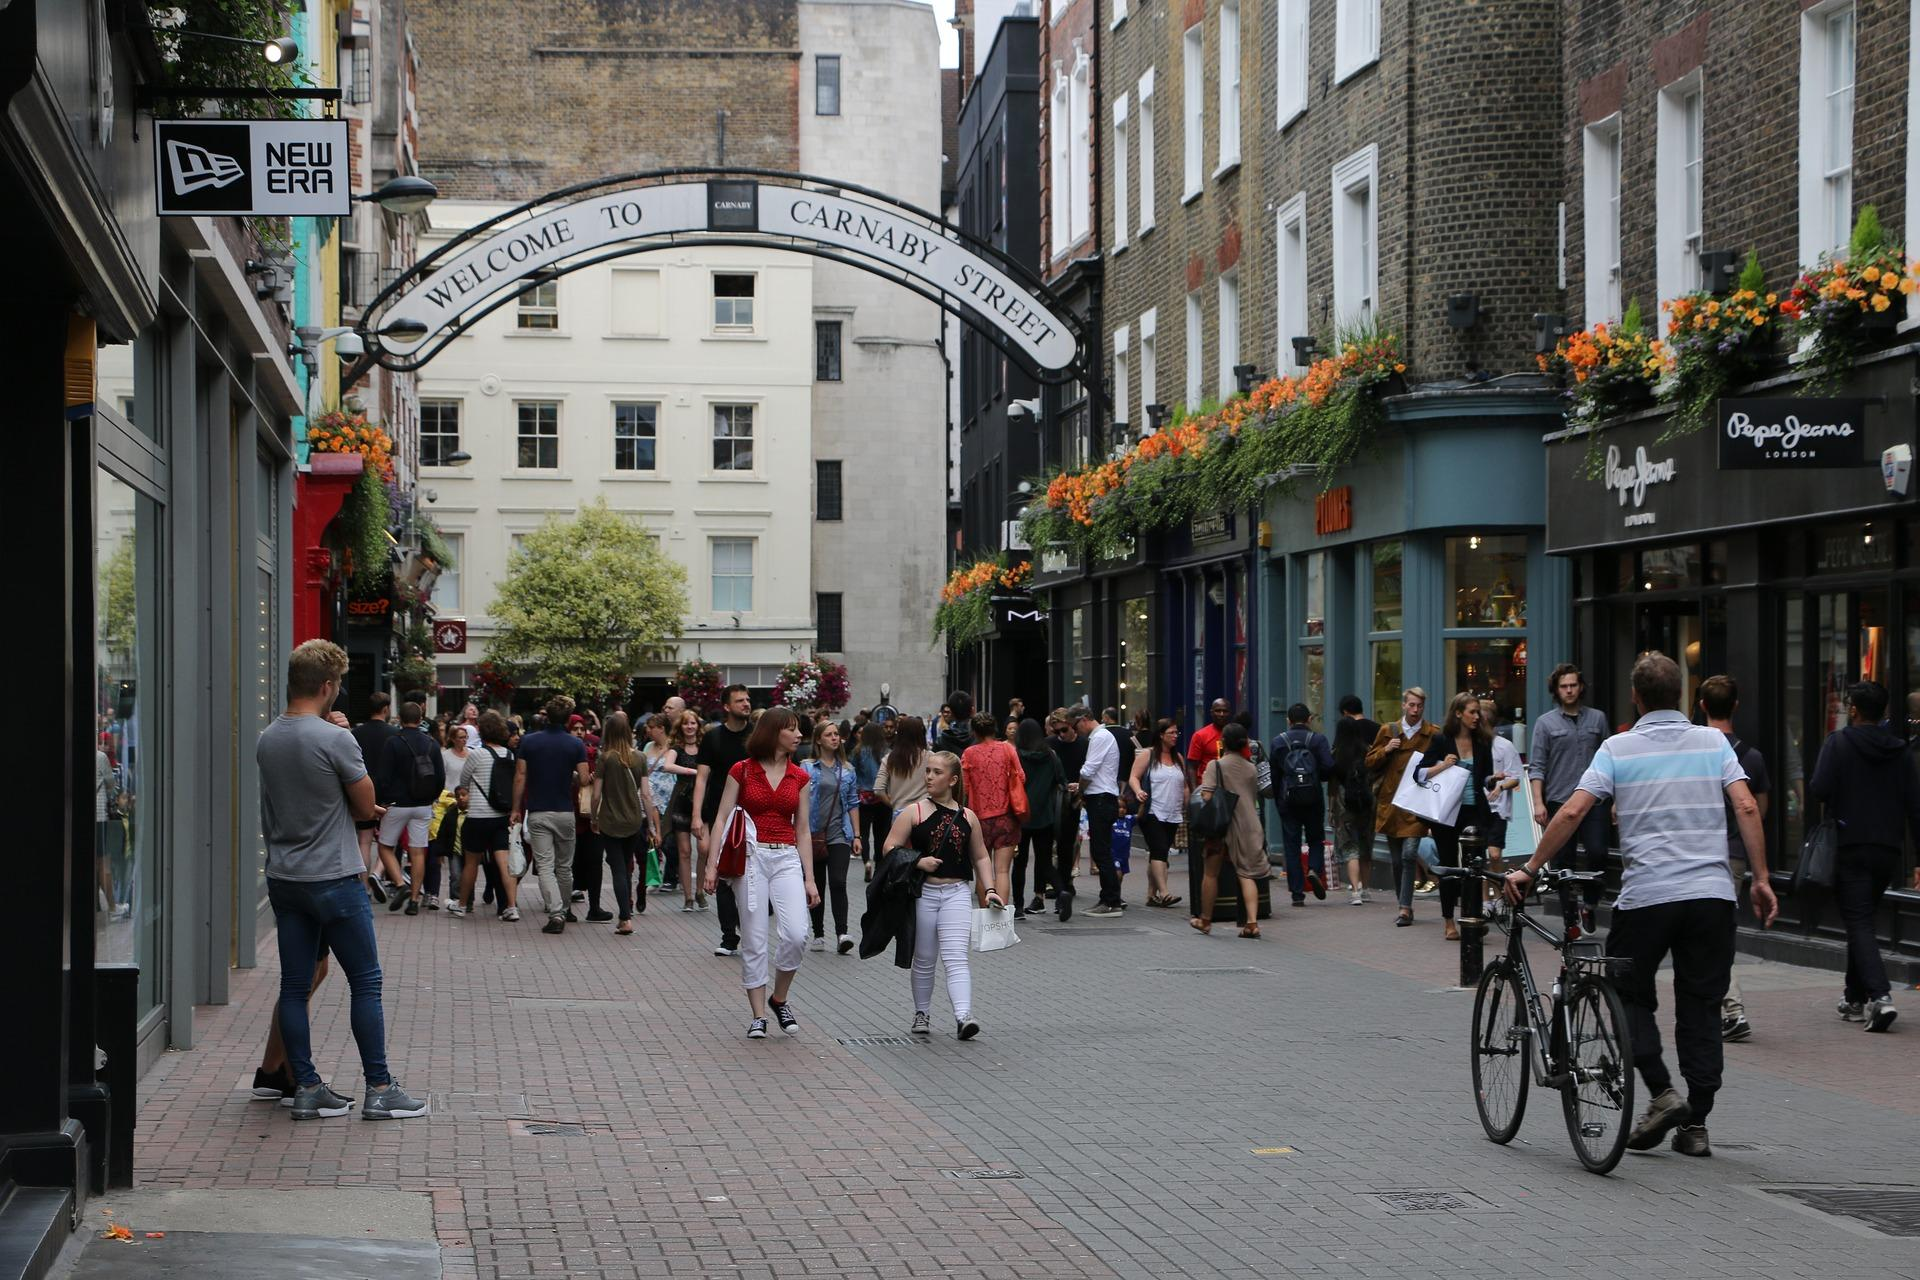 Carrer Carnaby. Compres